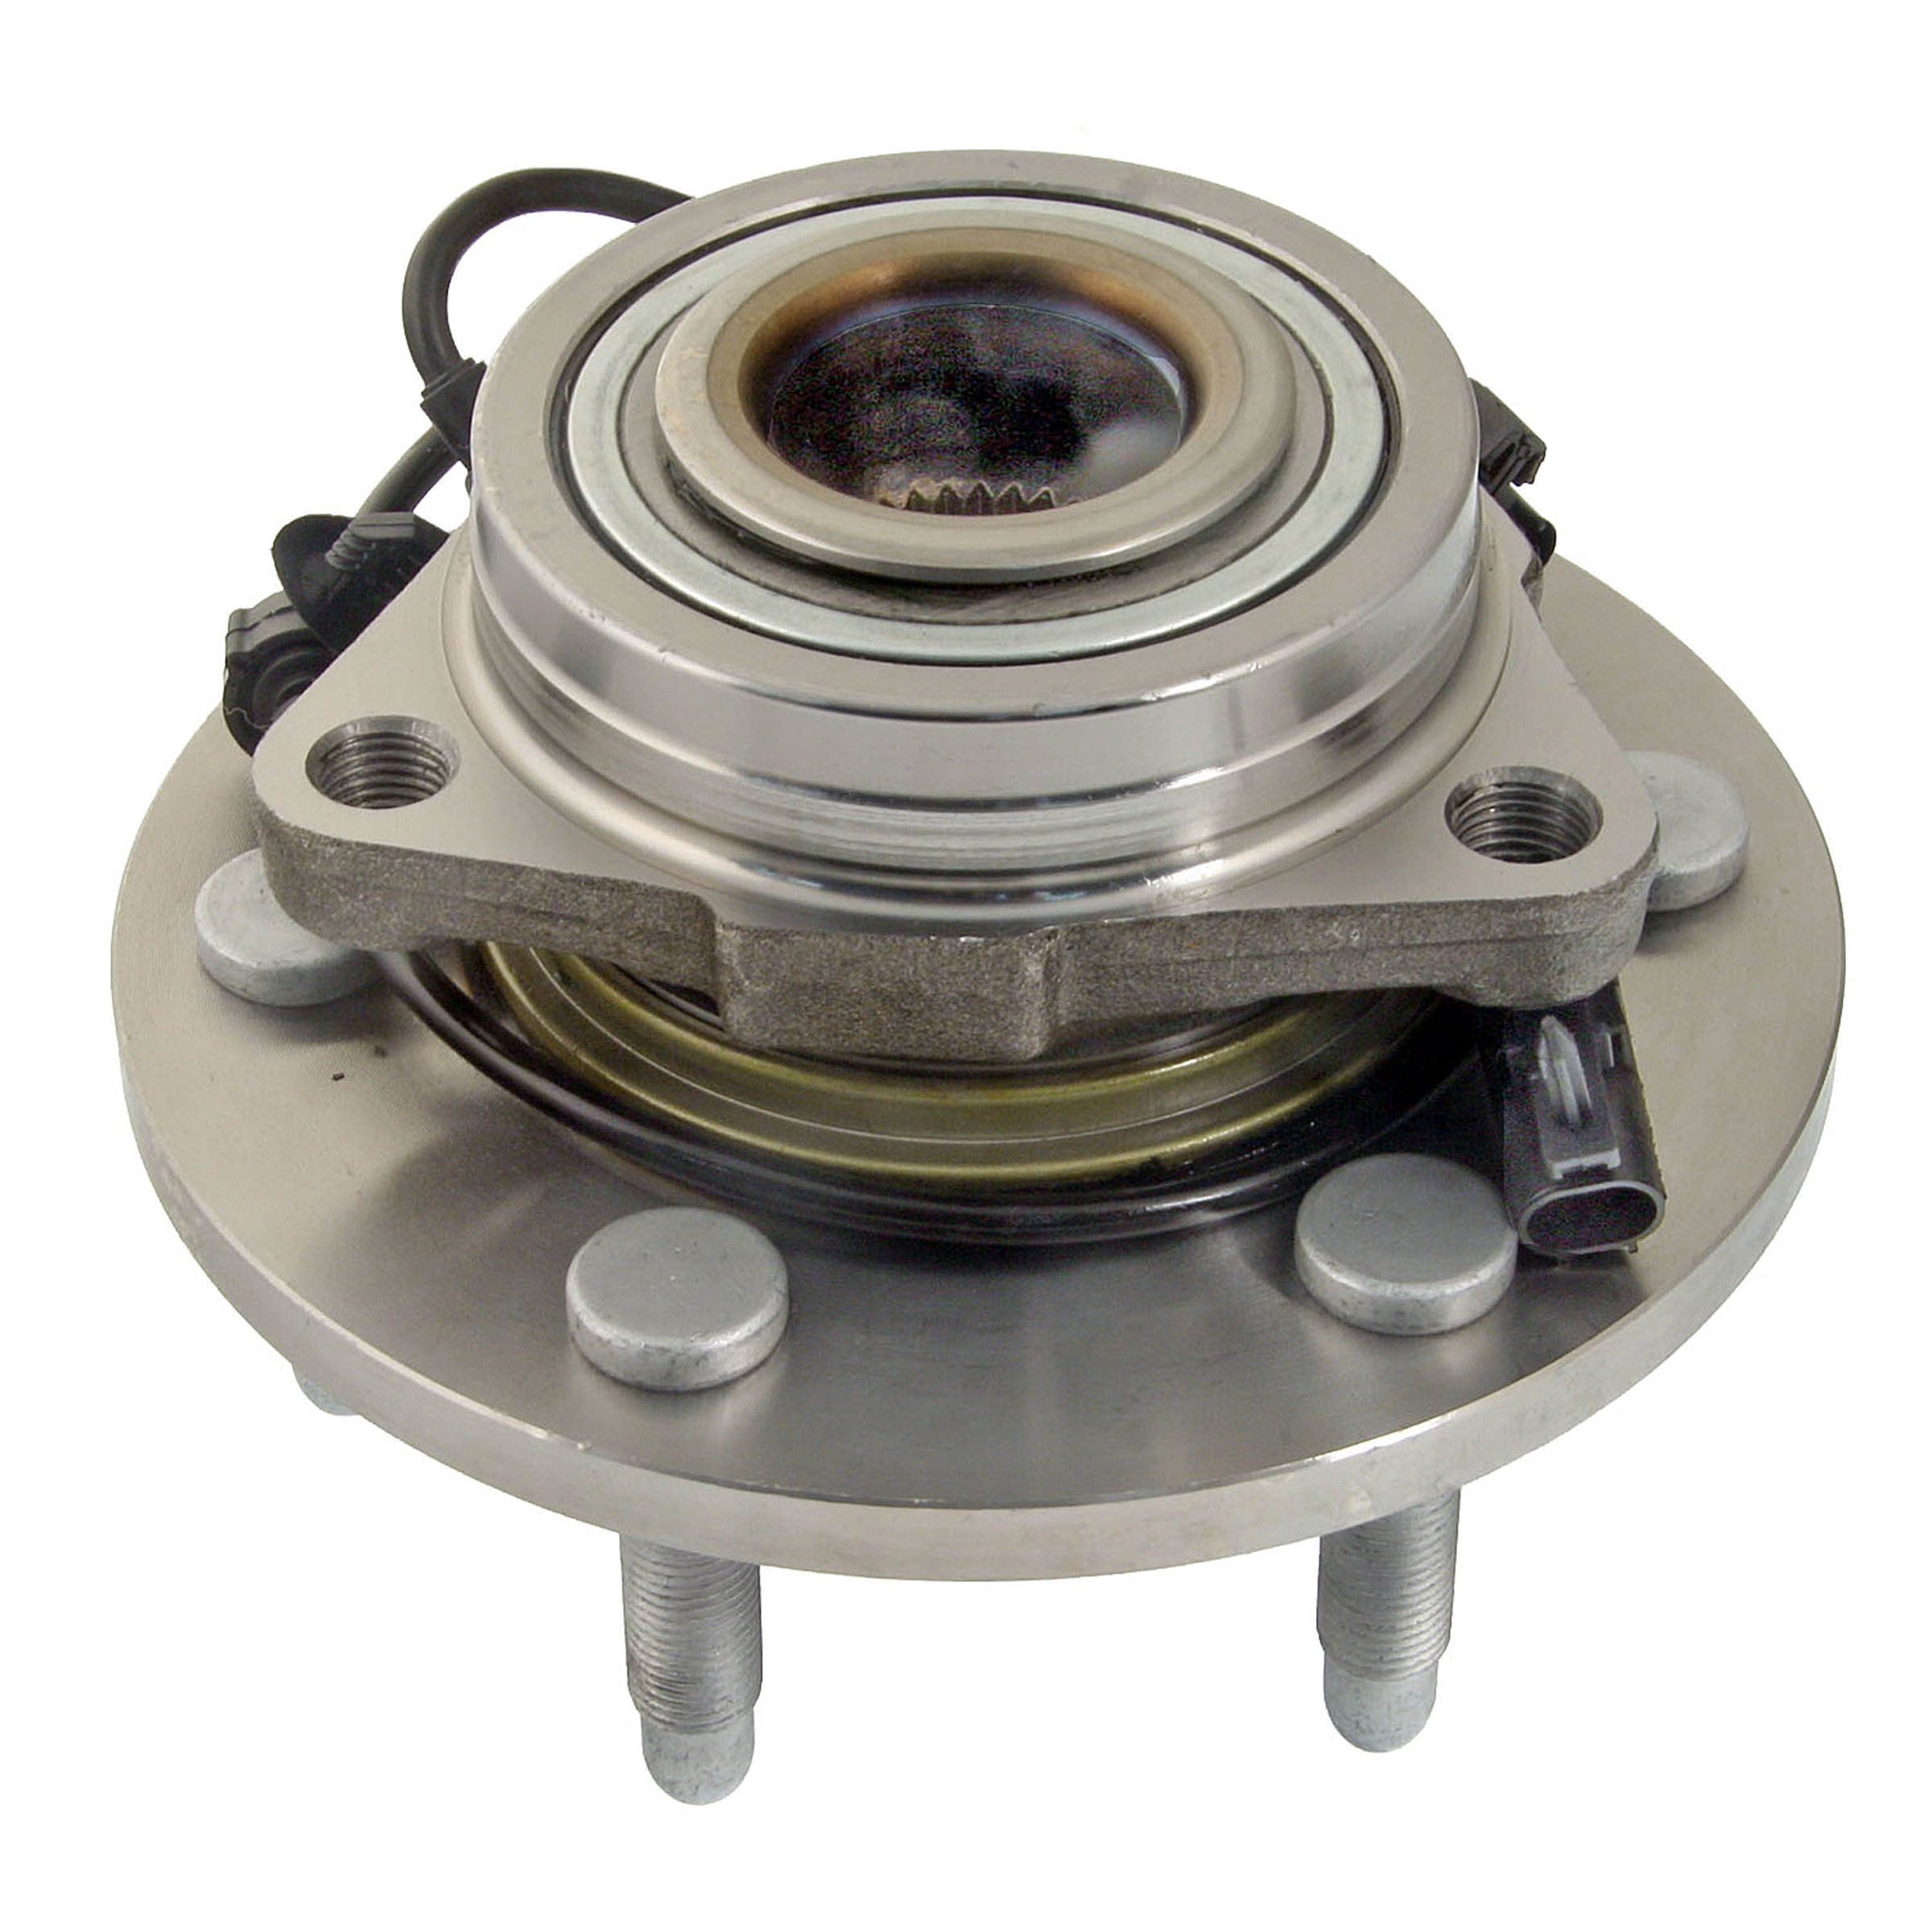 ACDelco 515096 Advantage Wheel Hub and Bearing Assembly with Wheel Speed Sensor and Wheel Studs by ACDelco